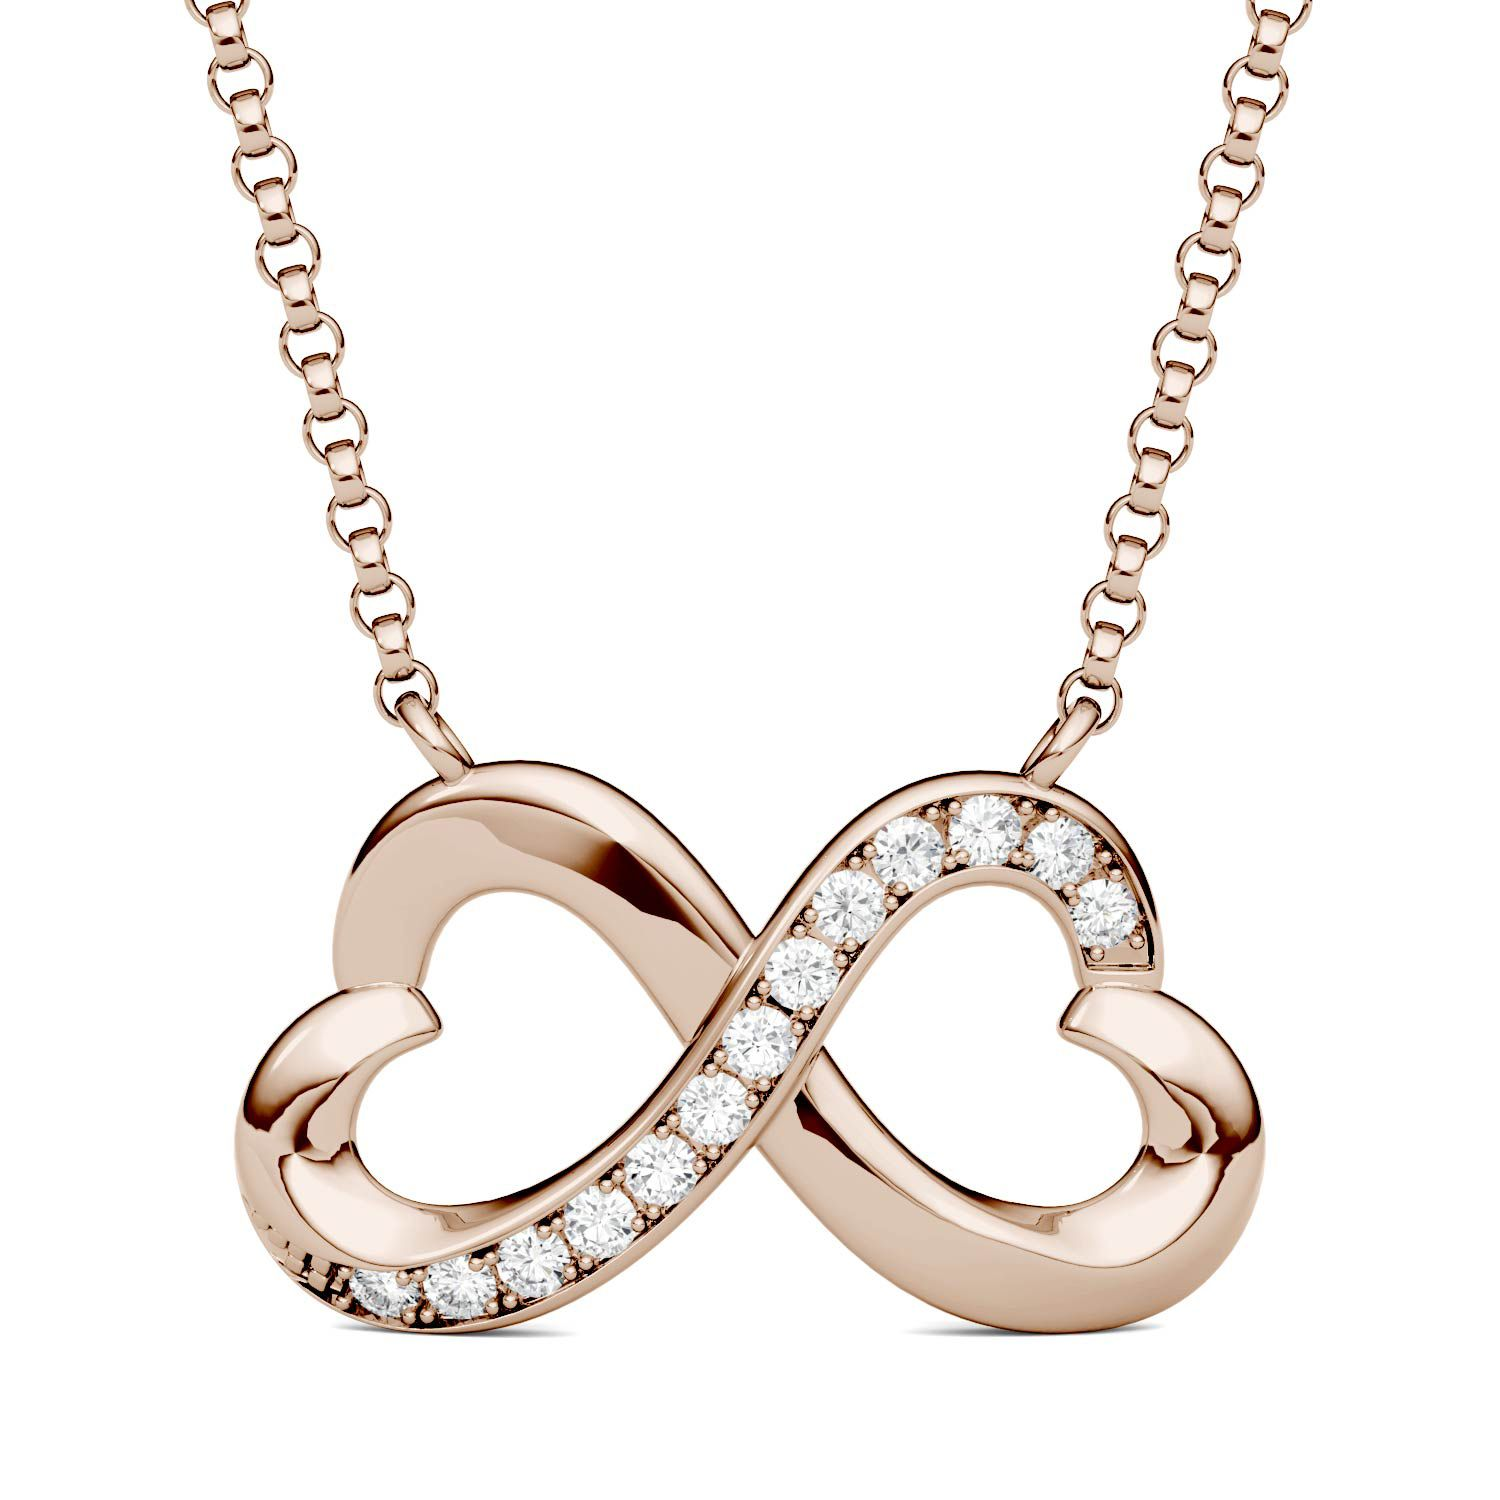 CHARLES & COLVARD: Round Colorless Moissanite Infinity Heart Necklace